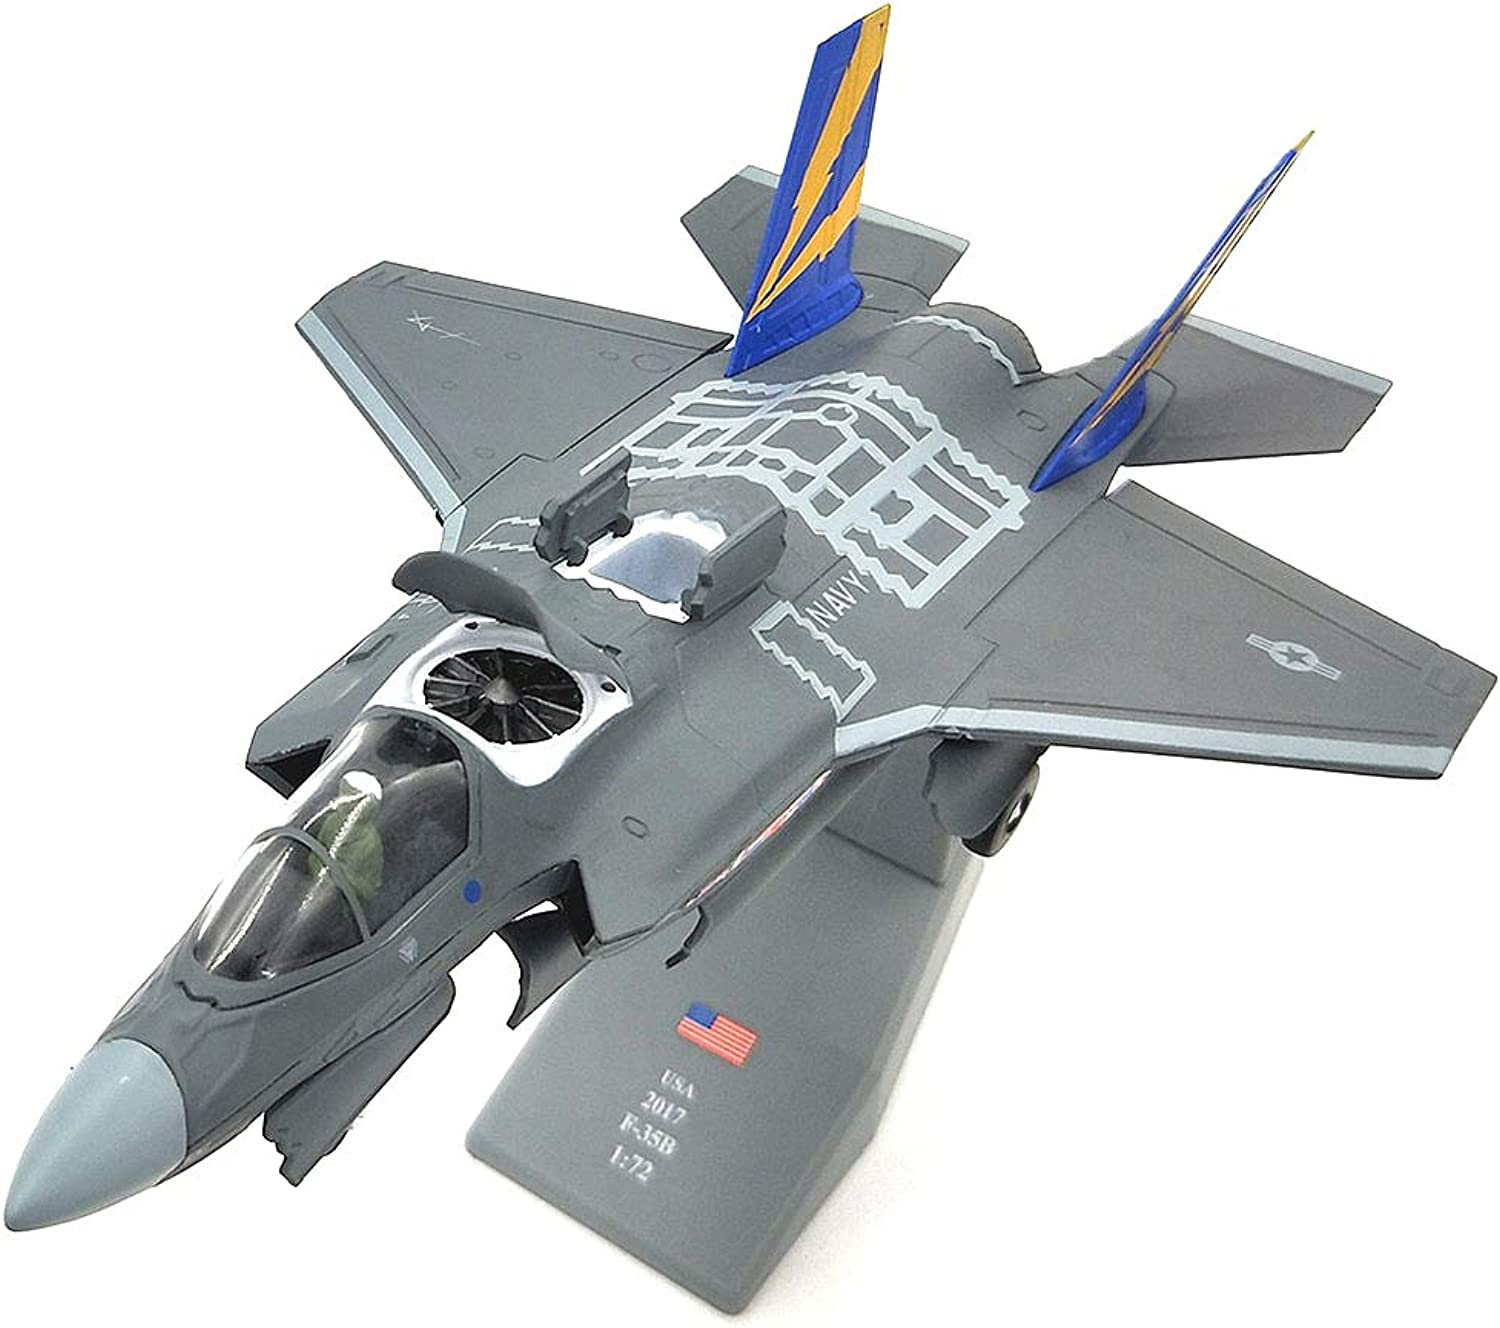 FIGHTNING II F35 1 72 diecast Plane Model Aircraft